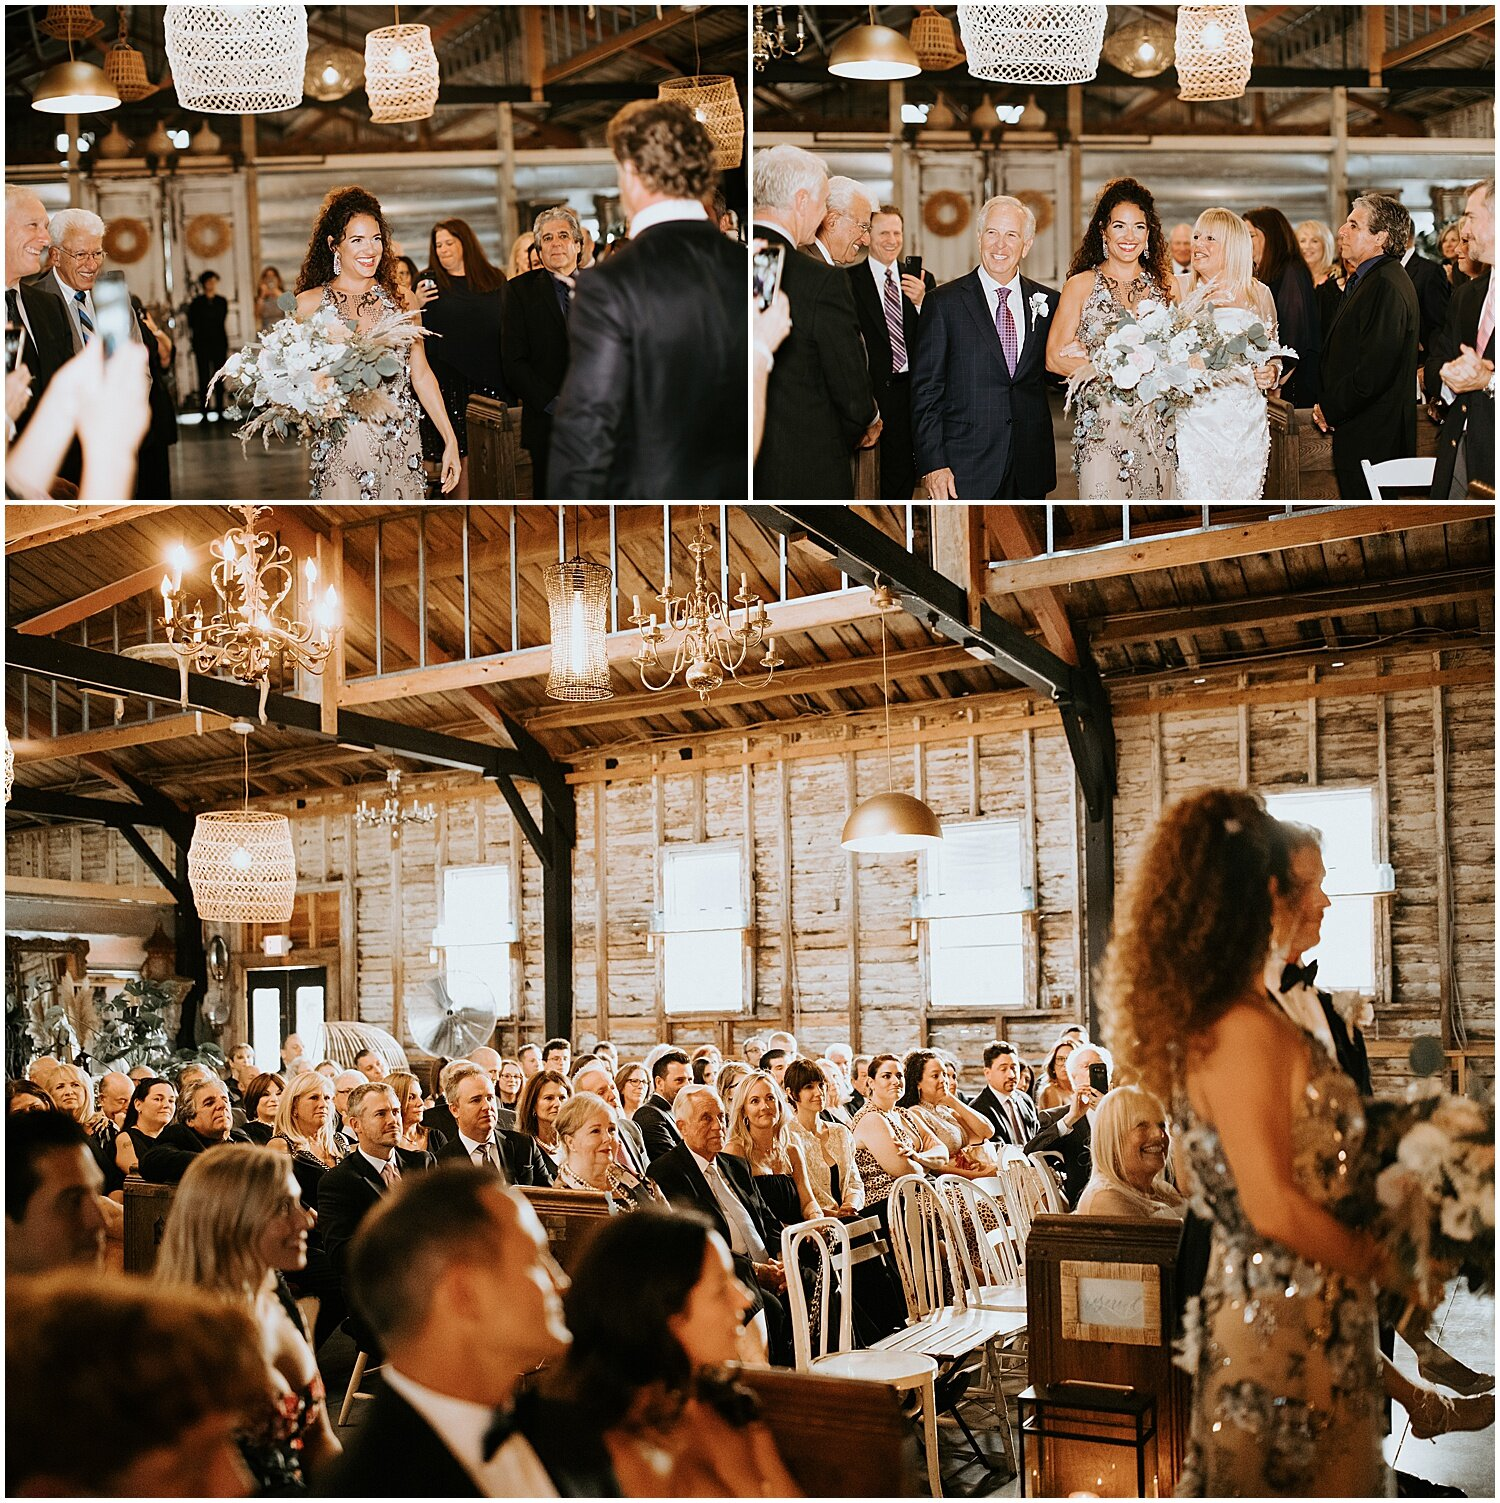 wedding_at_everly_at_railroad_cape_may_philadelphia_wedding_photographer_brittany_boote_0059.jpg